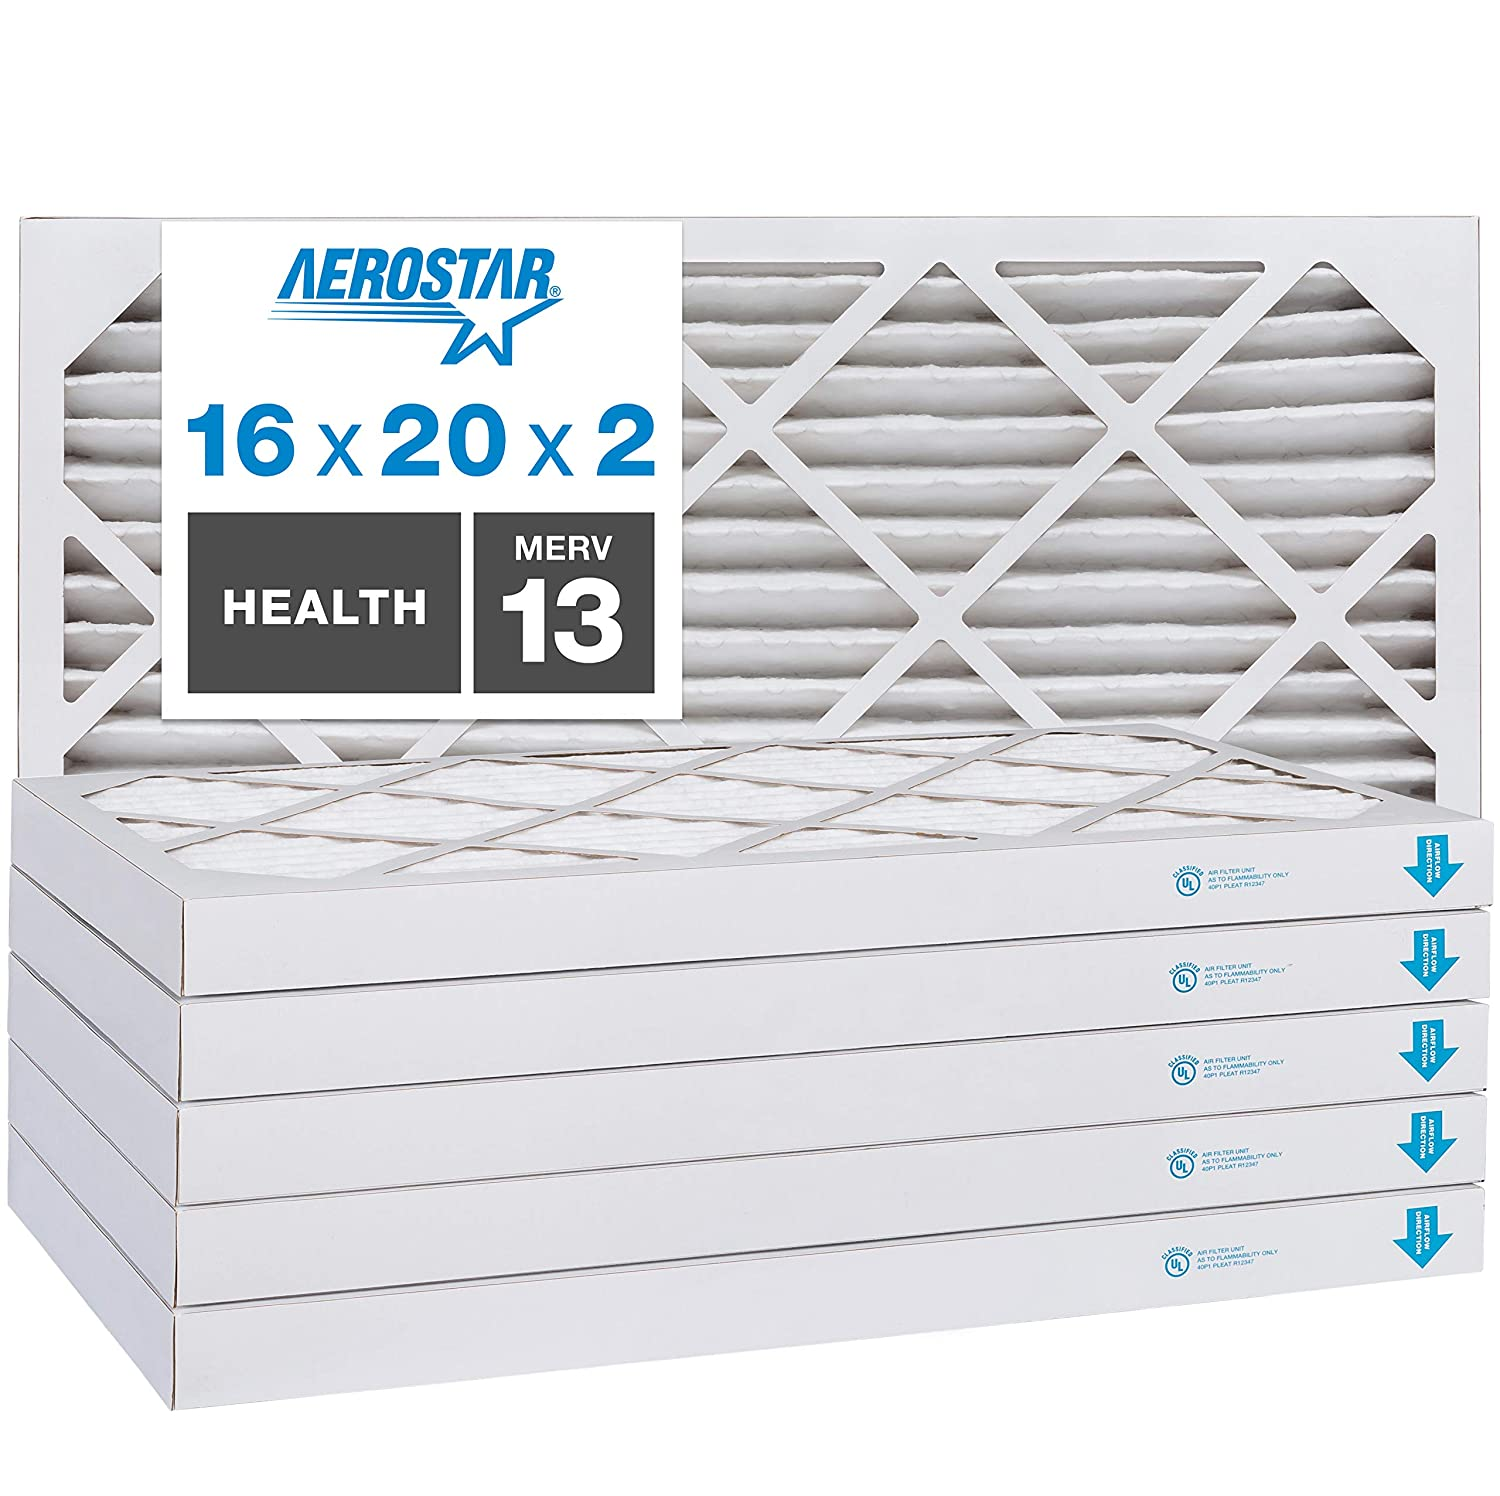 Aerostar Home Max 16x20x2 MERV 13 Pleated Air Filter, Made in the USA, 6-Pack